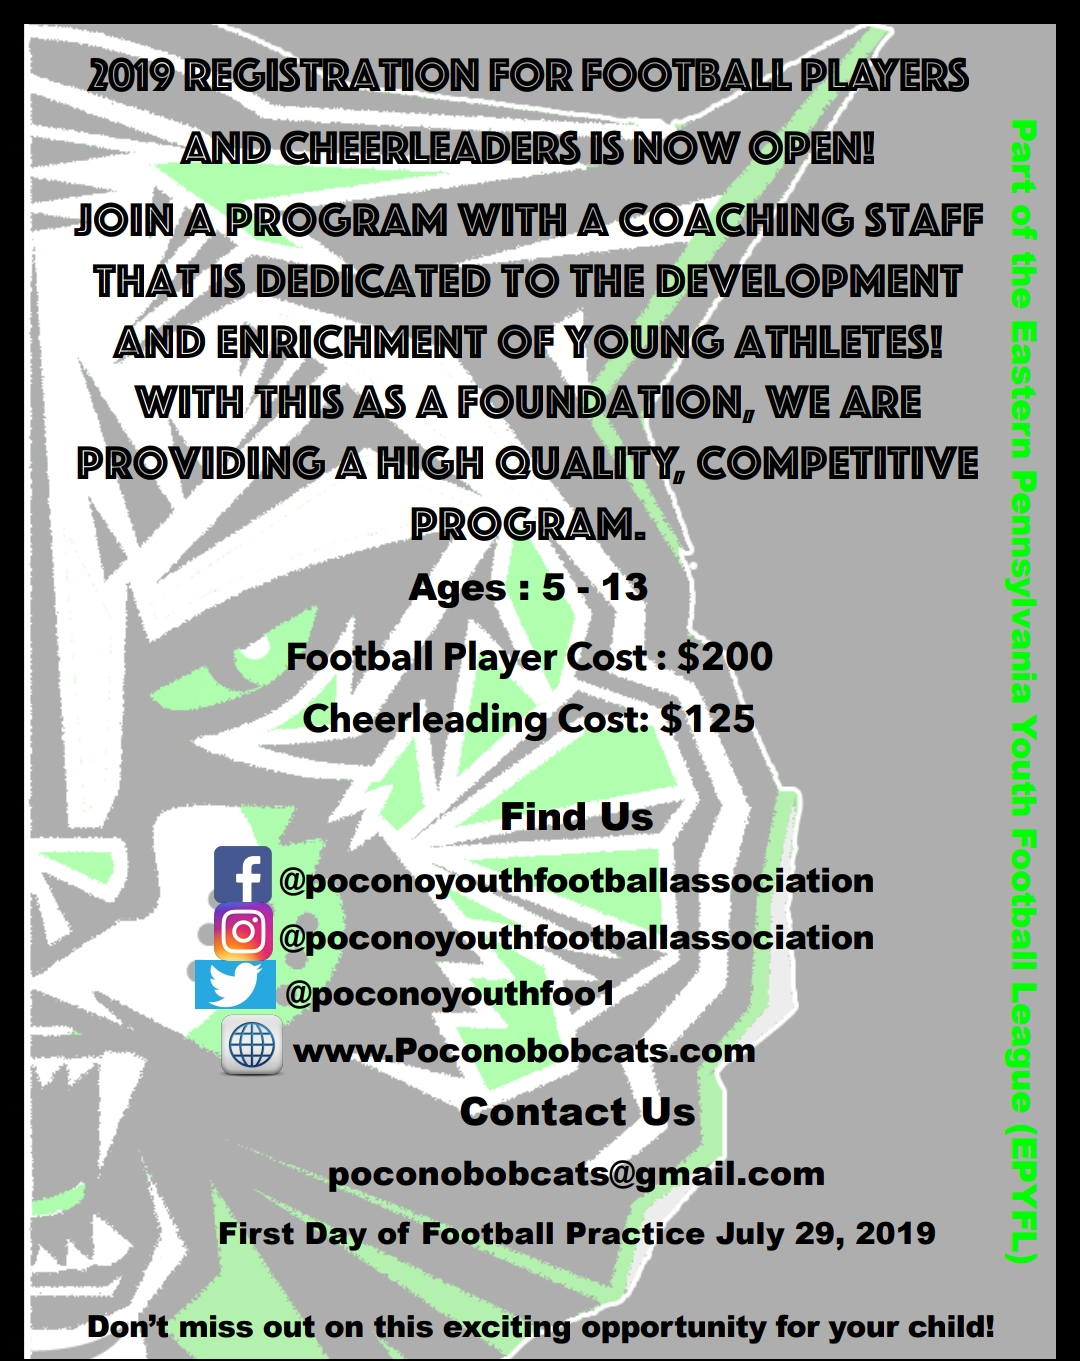 Pocono Bobcats Youth Football Association